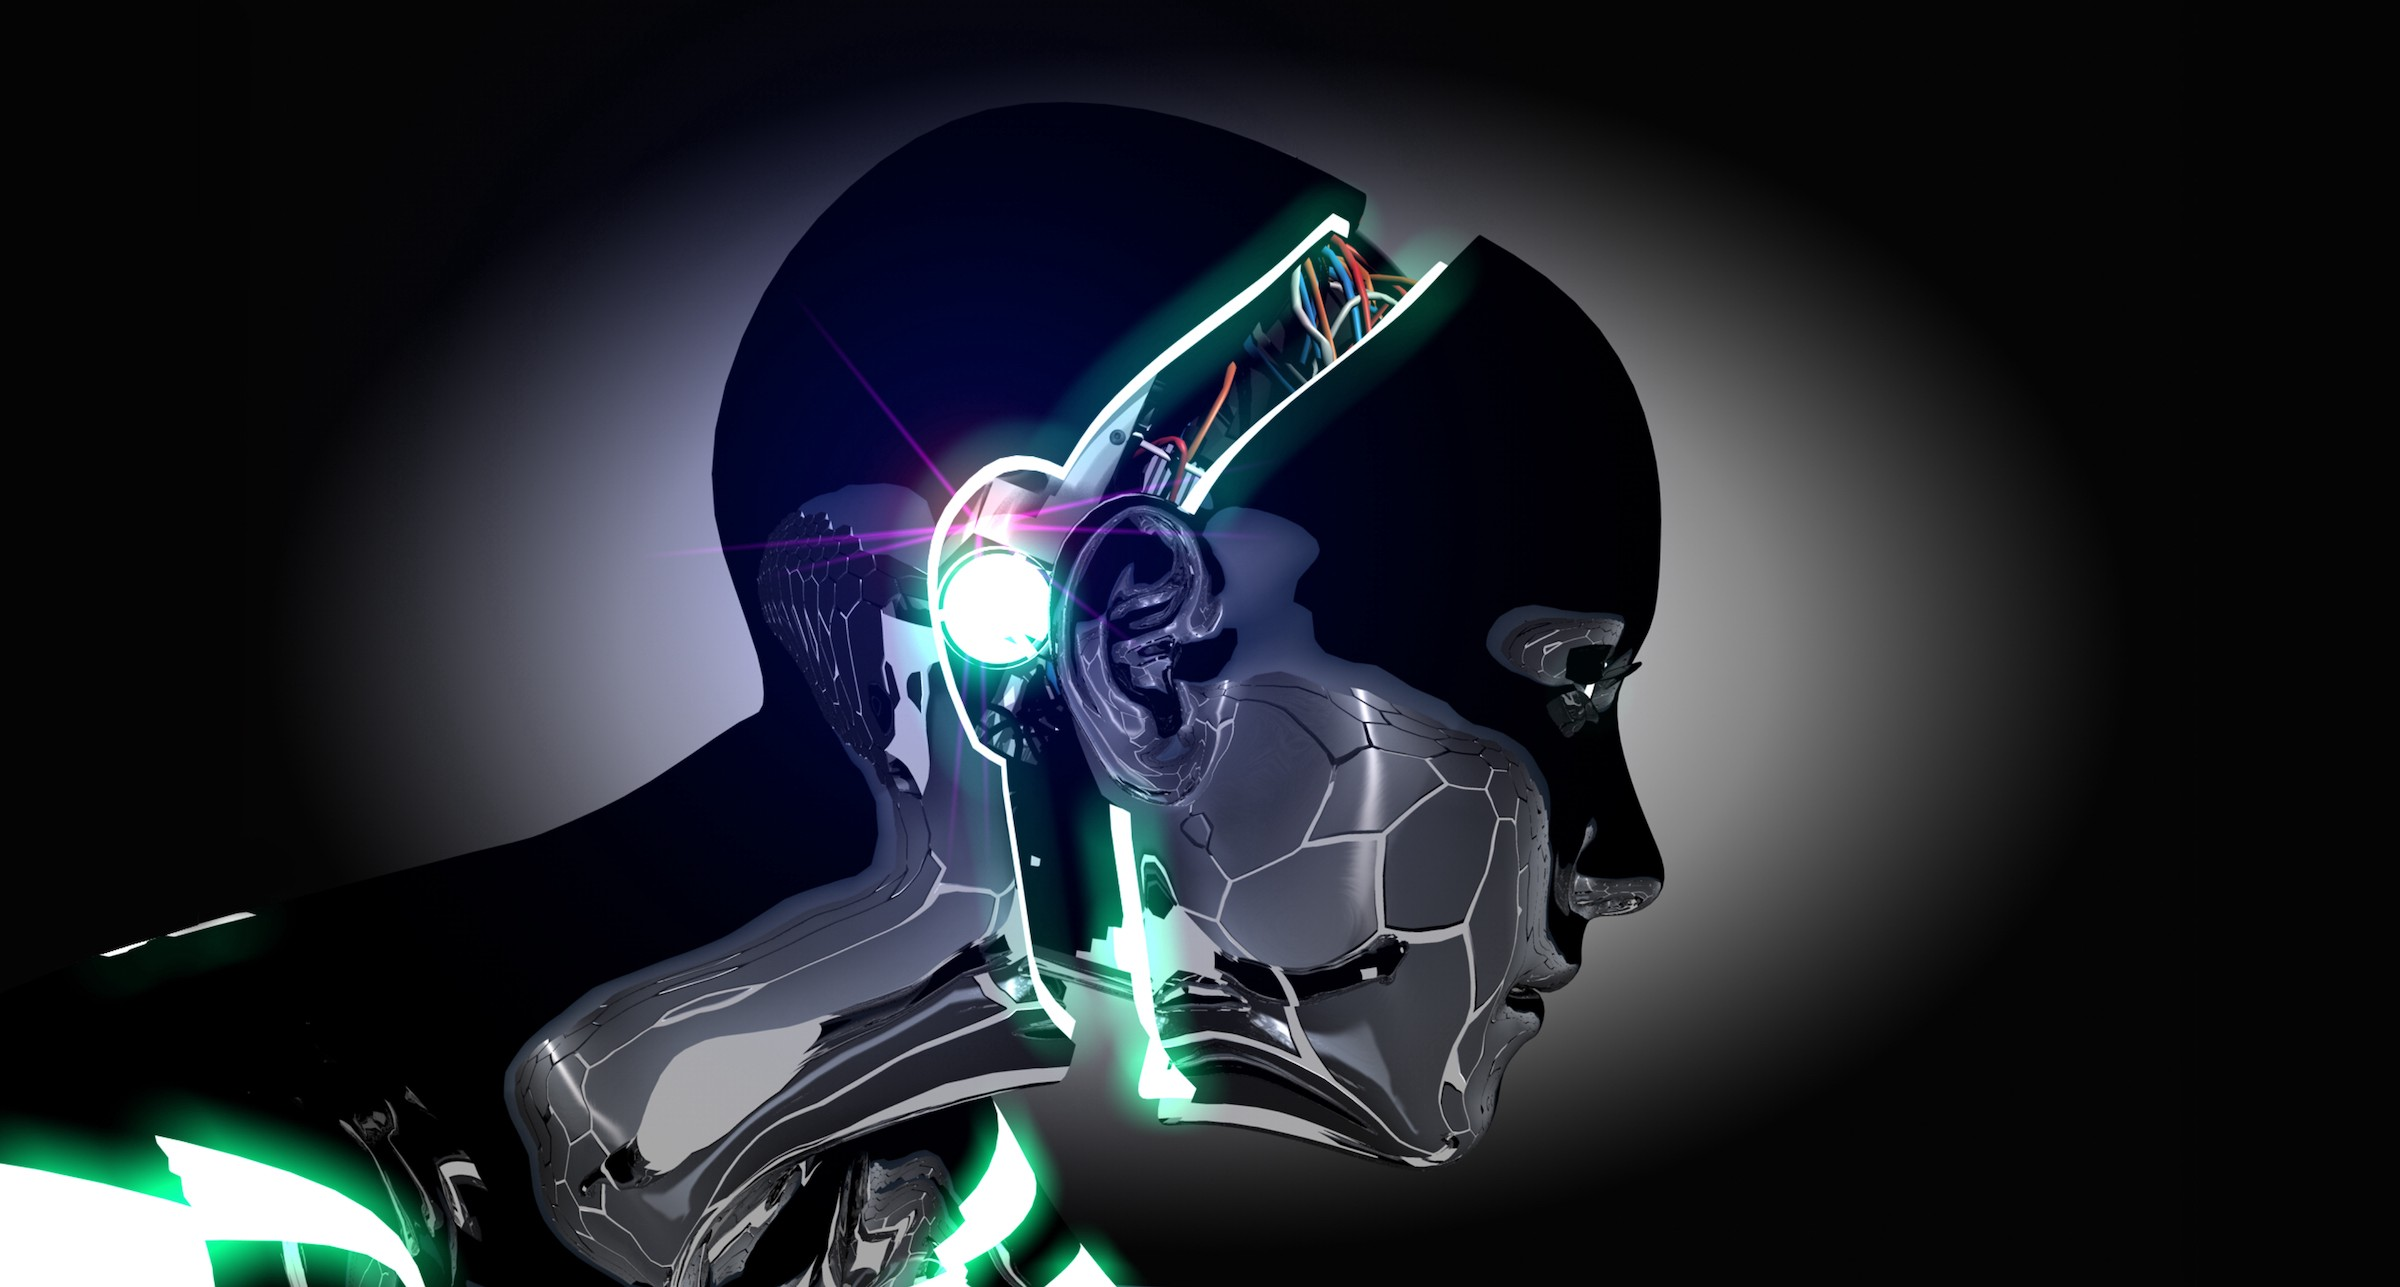 Illustration of a cyborg from the collarbones up, facing the right side of the image, in a dark space. Its metal face has been slightly detached from the rest of its head to reveal the computer chips and wires inside.